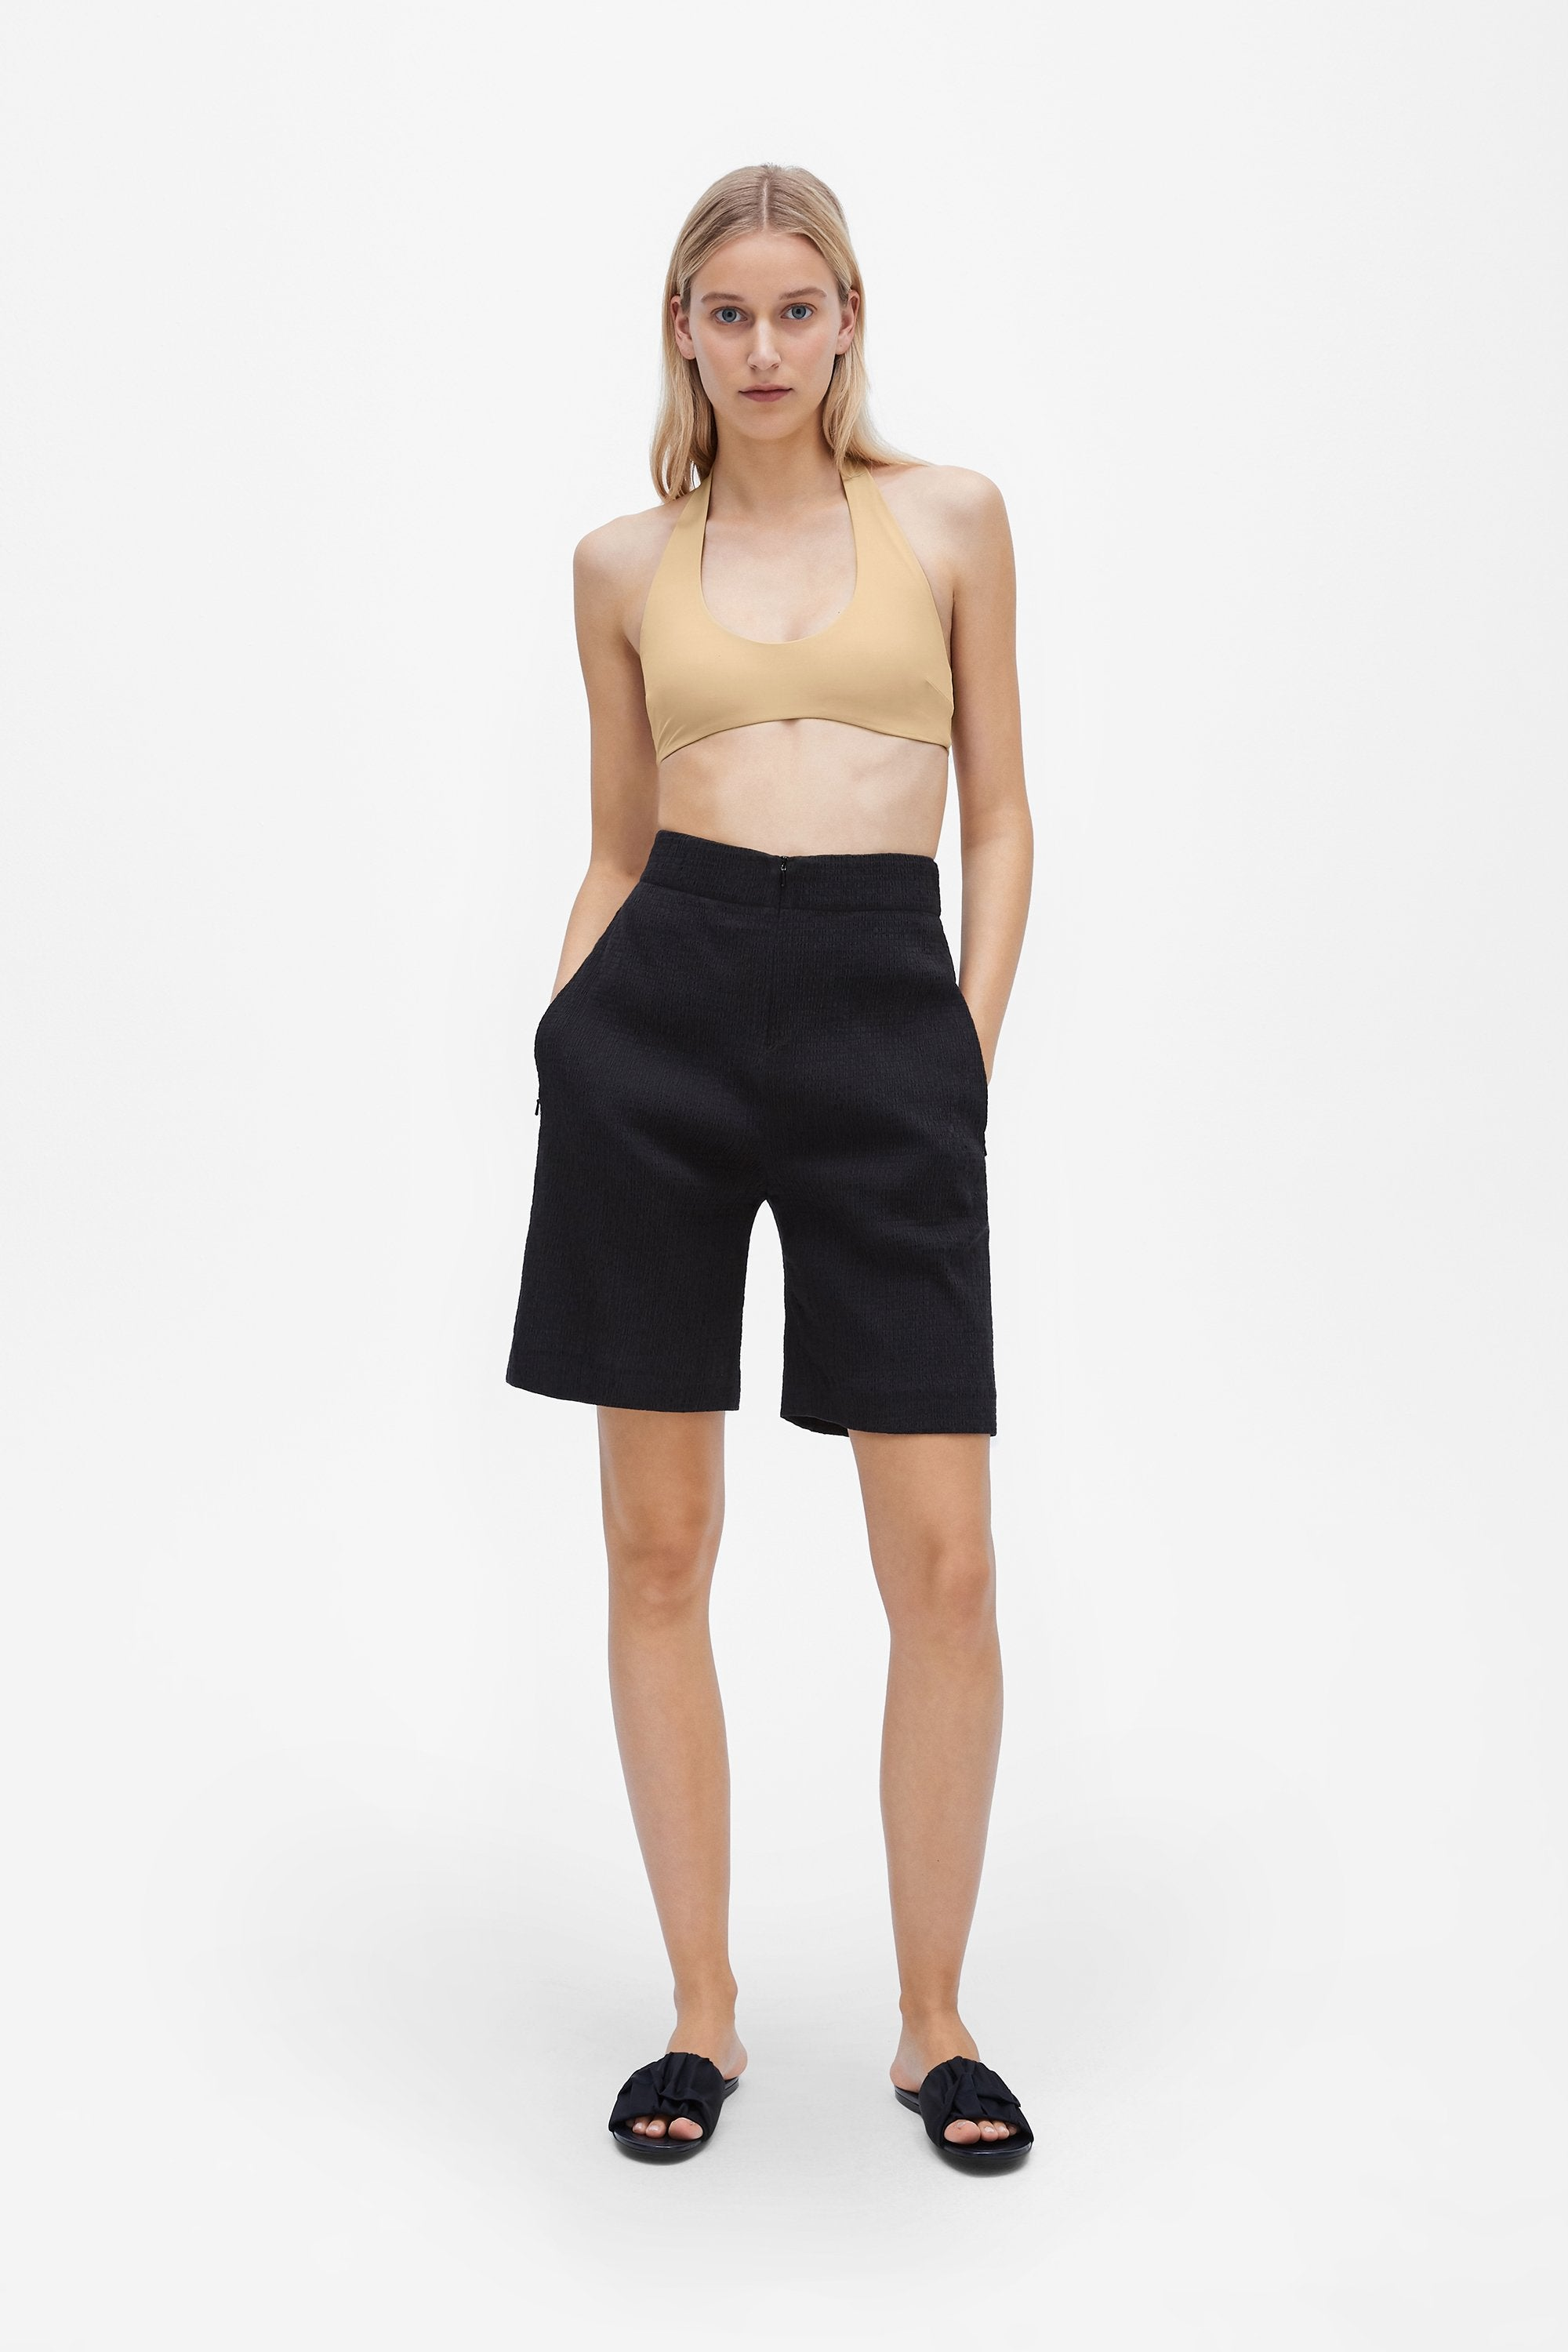 Invisible stretch shorts - Shirred voile - Black - Resortwear shorts - Her Line